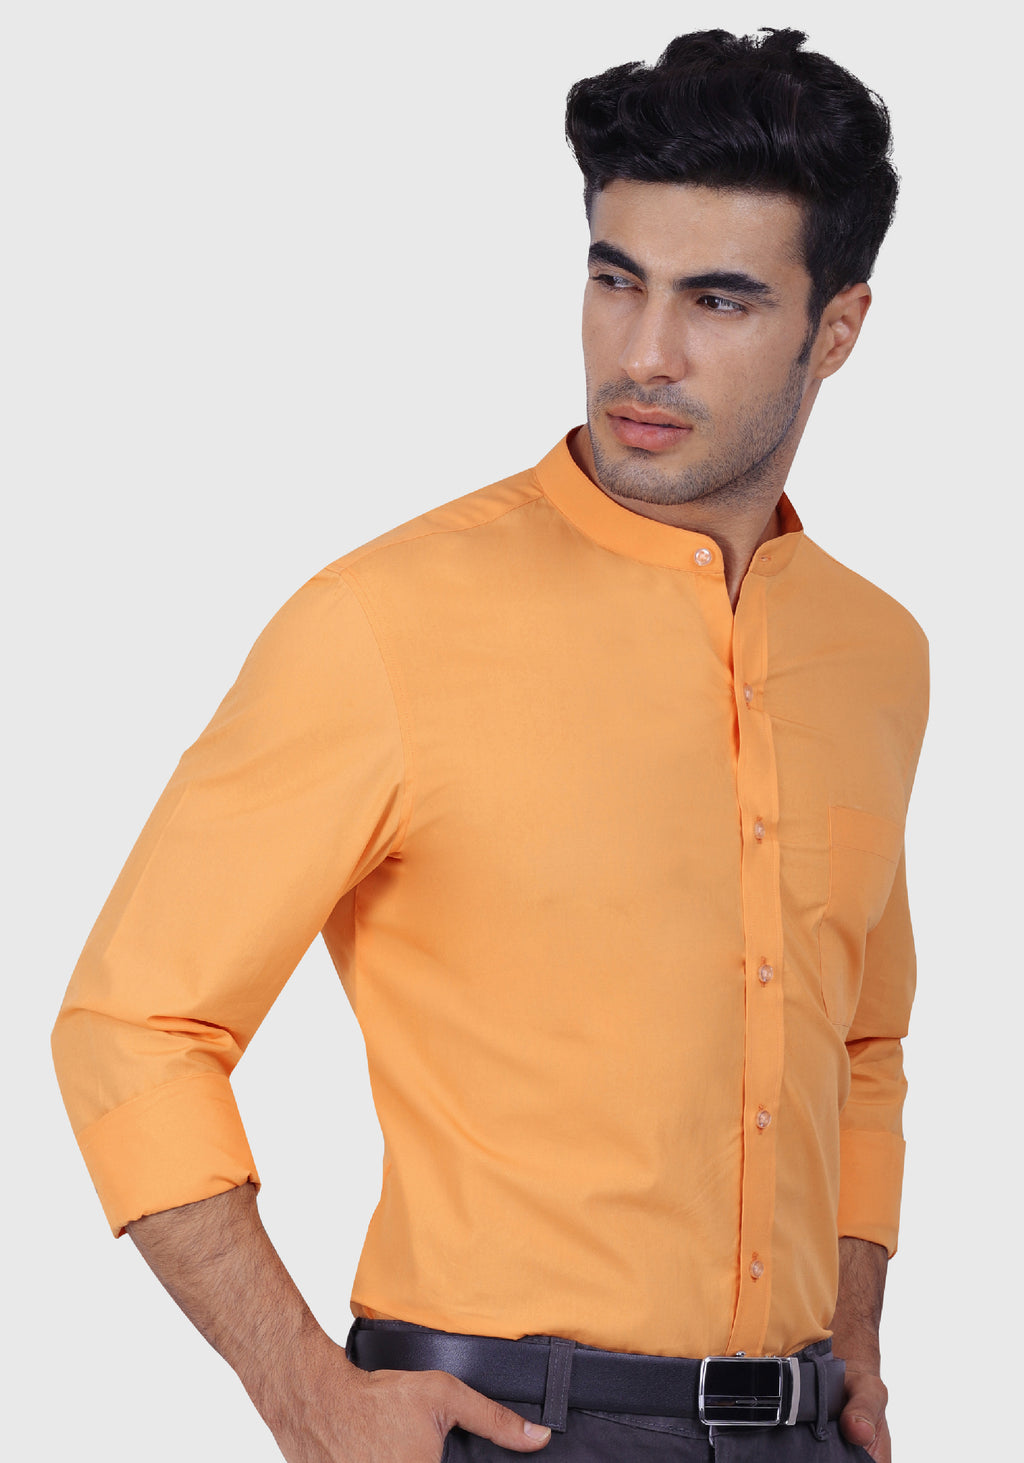 Stirring Orange Shirt (Comfortable Slim Fit)